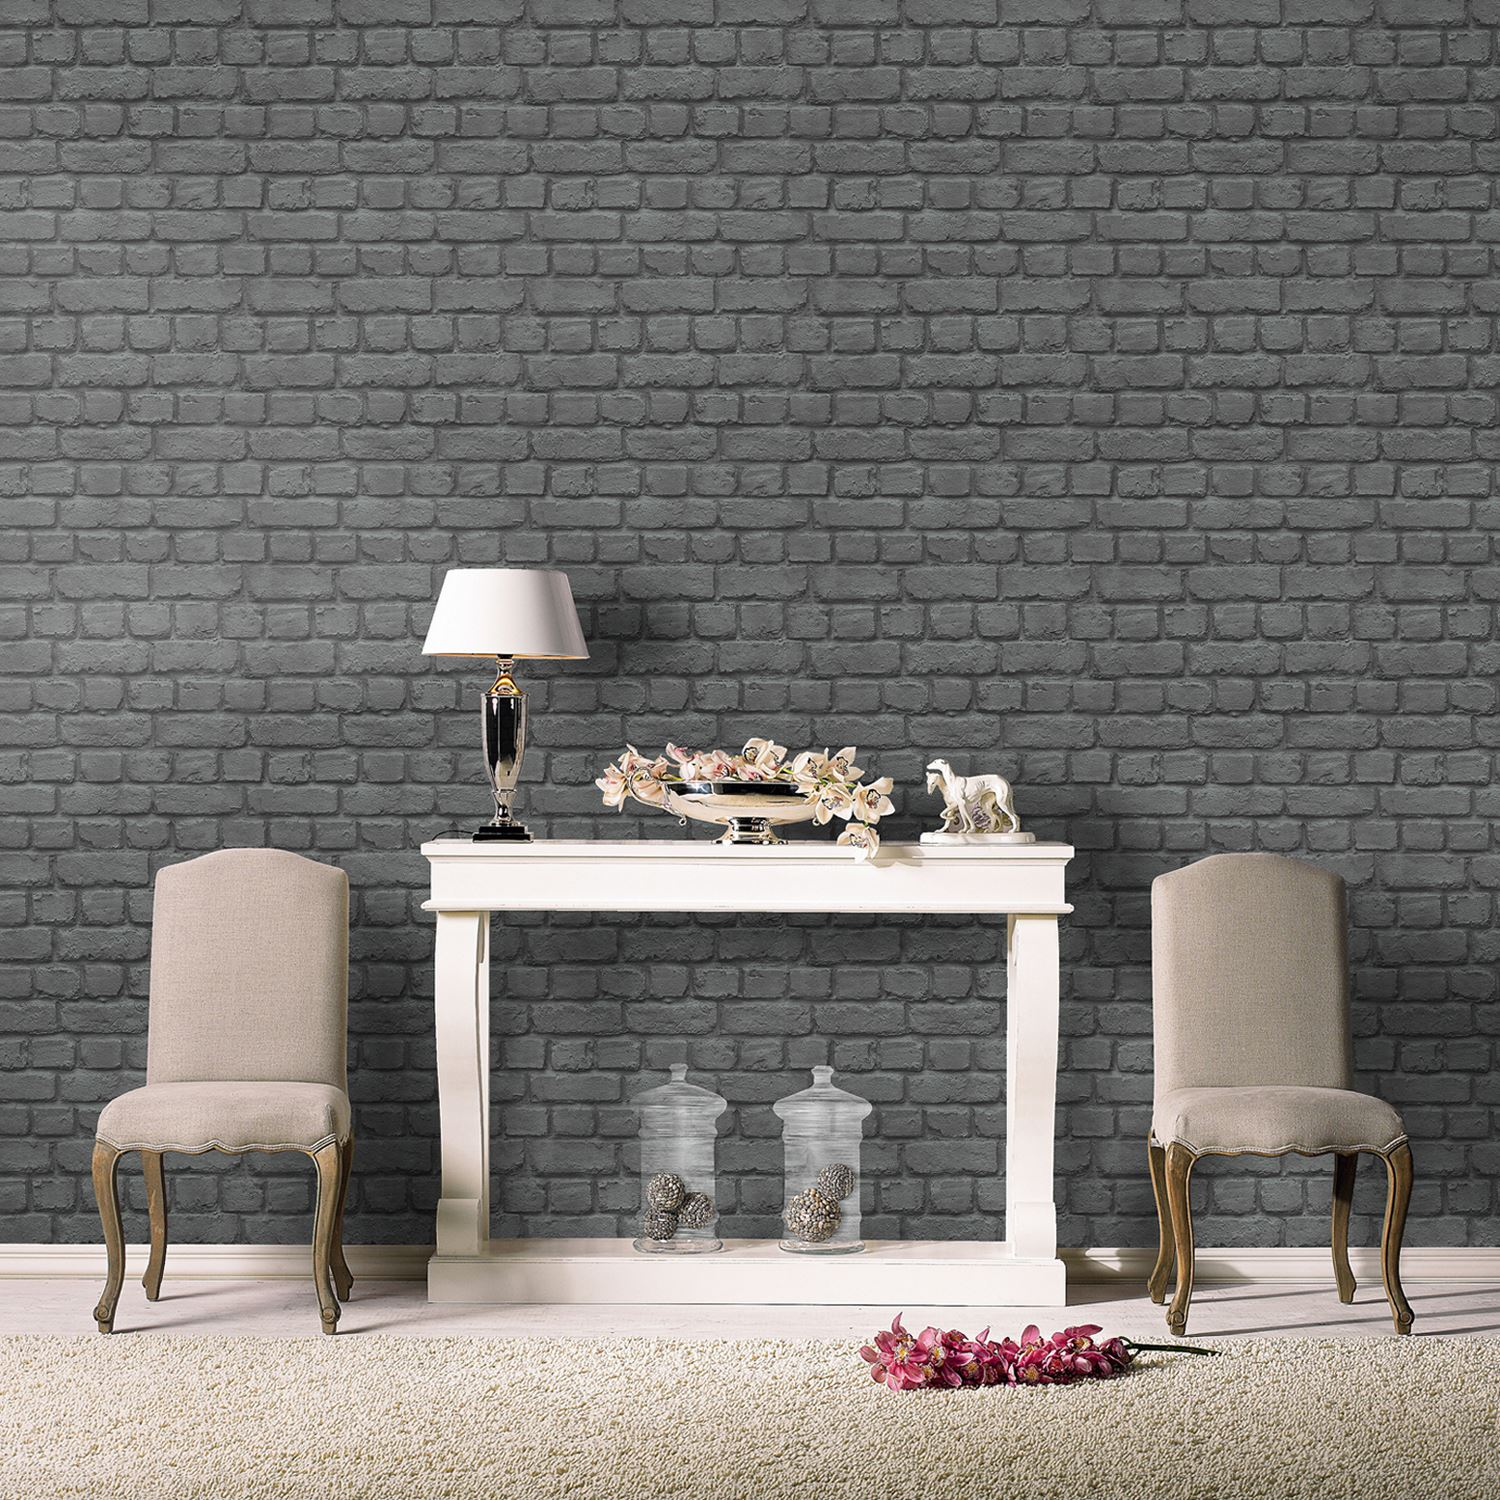 Schwarze Backstein Tapete : Charcoal Gray Red Brick Wall Background